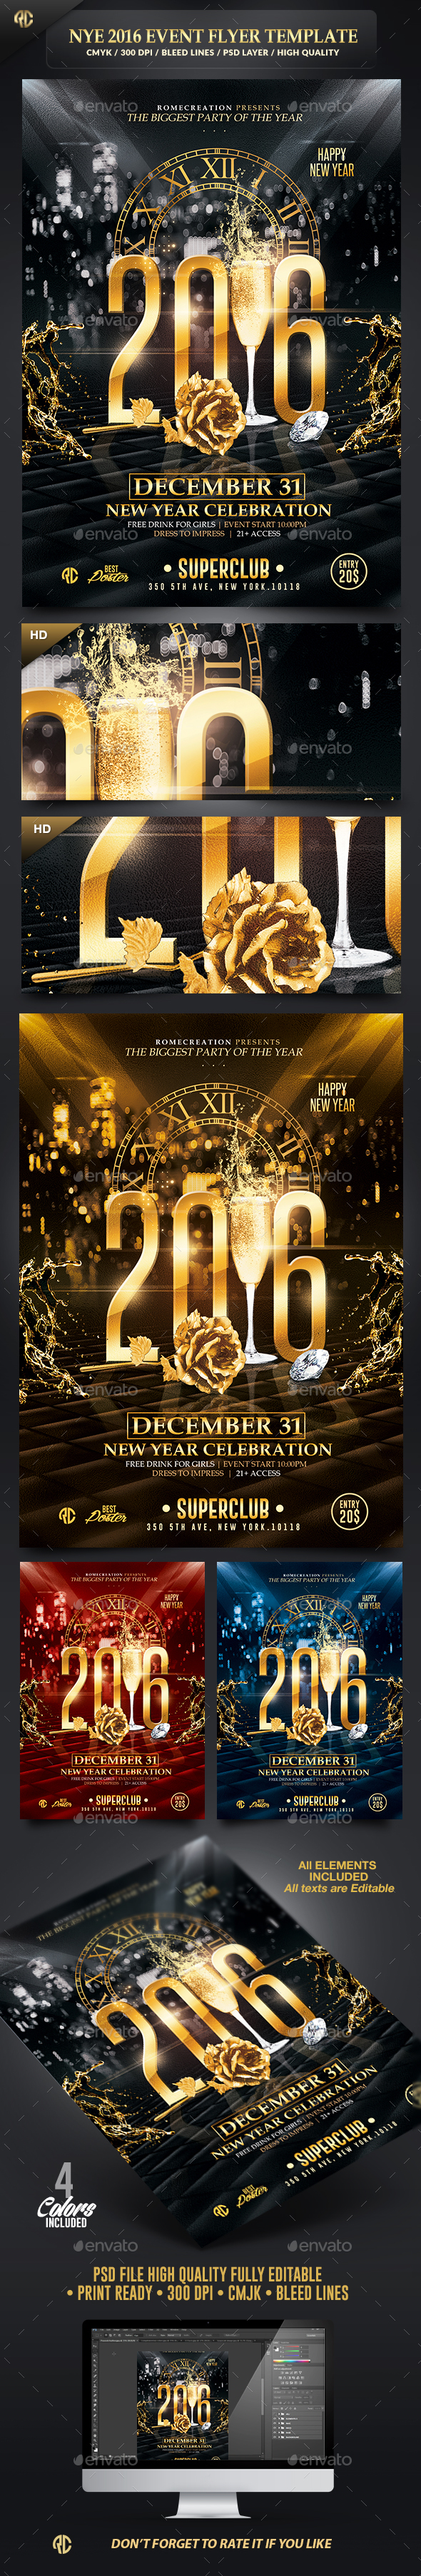 New Year Event 2016 | Psd Flyer Template  - Flyers Print Templates